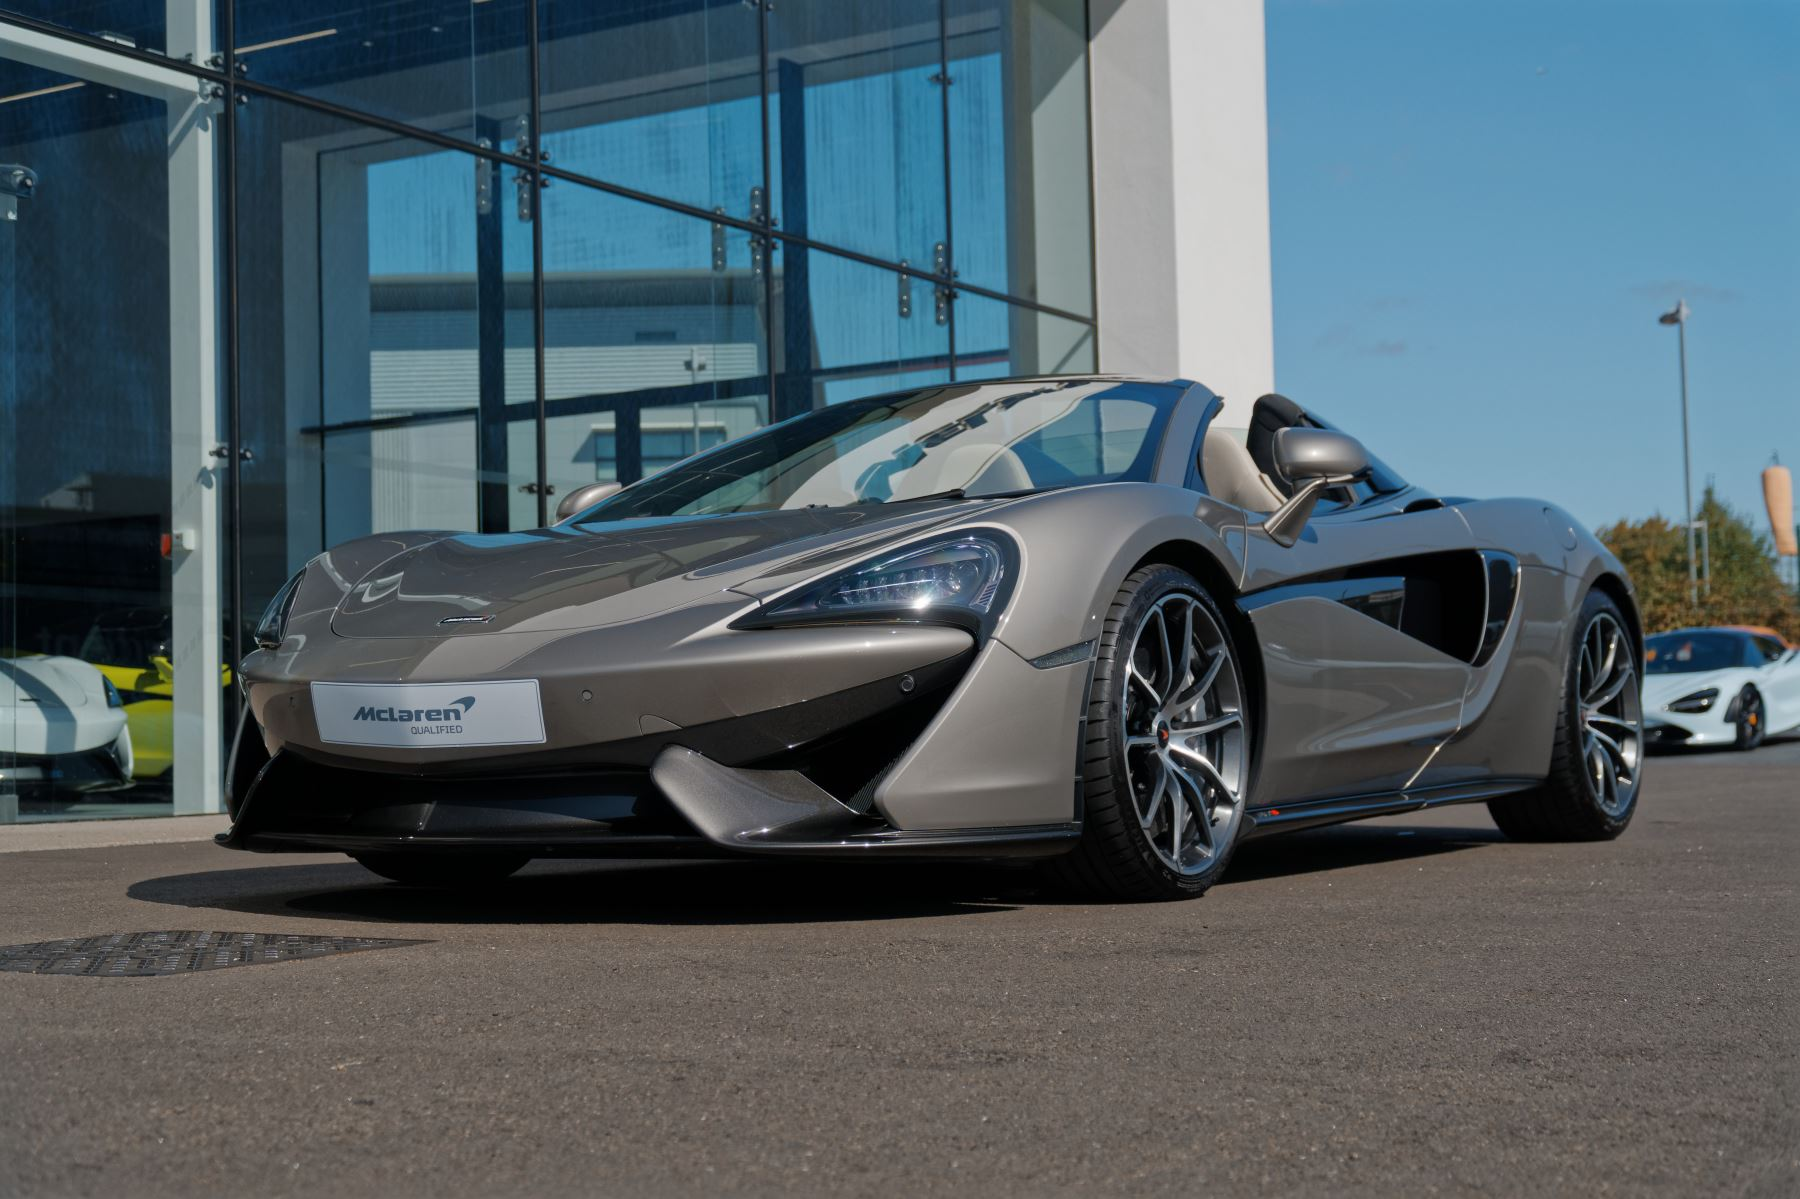 McLaren 570S Spider SSG 3.8  Semi-Automatic 2 door Convertible (2018) image